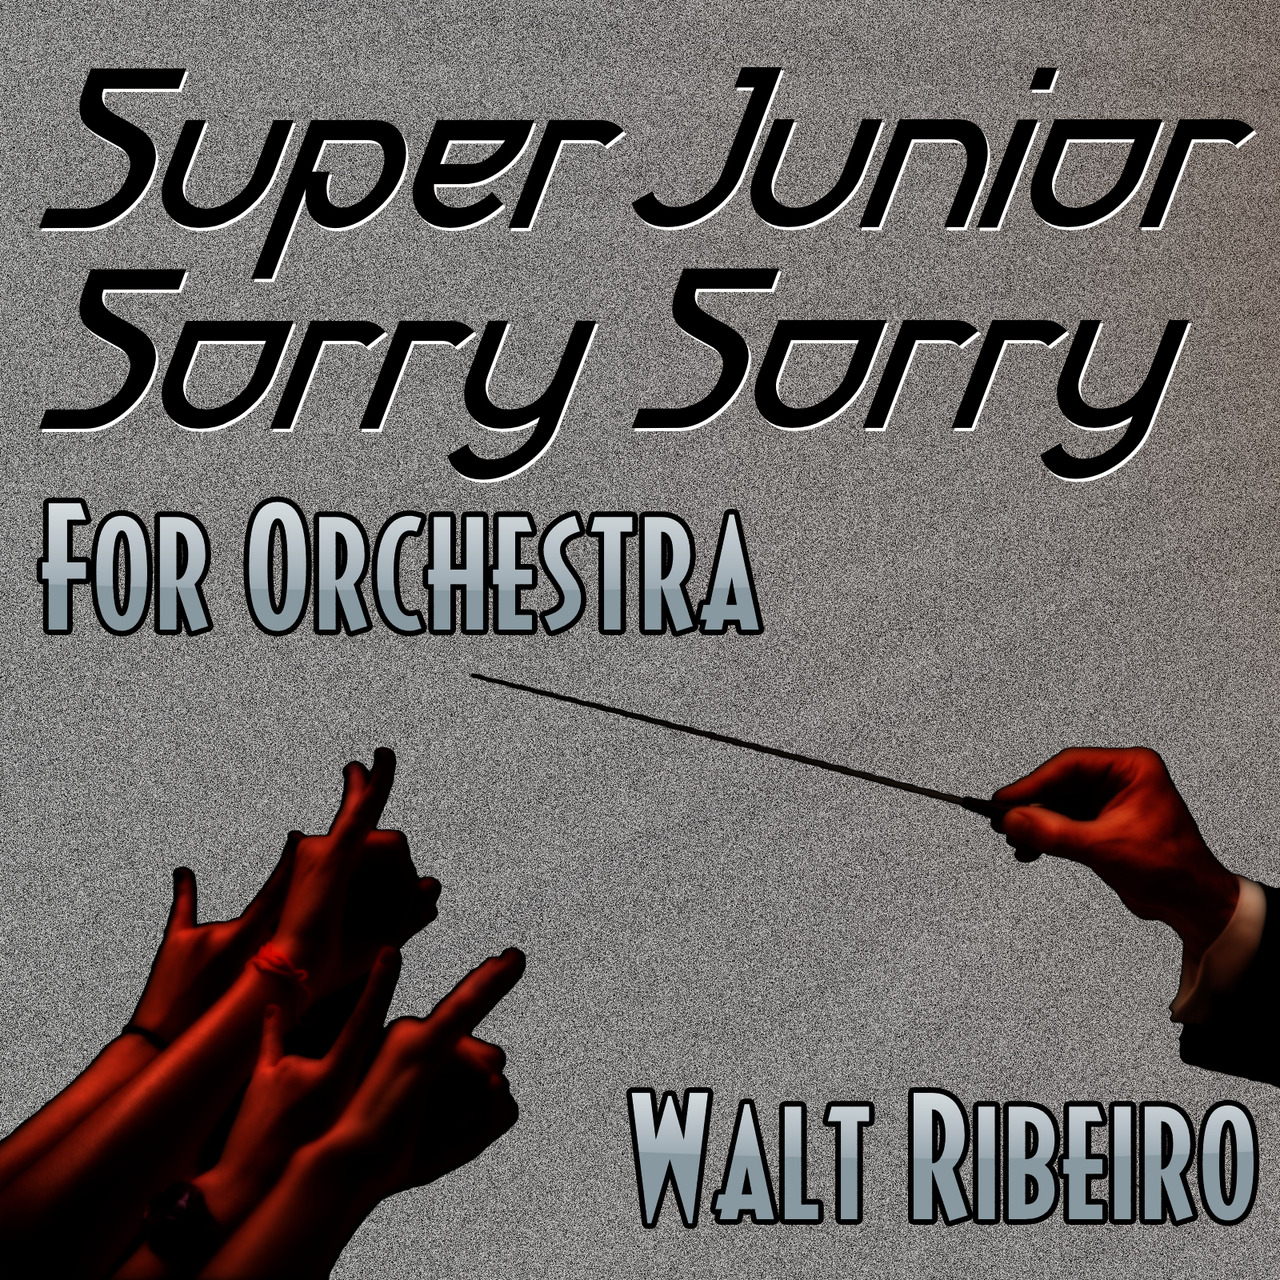 This week's piece: Super Junior 'Sorry Sorry' For Orchestra. For my 3rd Kpop tribute, I played off of the black/white/gray from Super Junior's color scheme that is seen in their videos and artwork. To offset the 3-color design, I added a warmth of dark red - a emotional color that, appropriately for this arrangement, symbolizes infatuation, passion, and vitality.